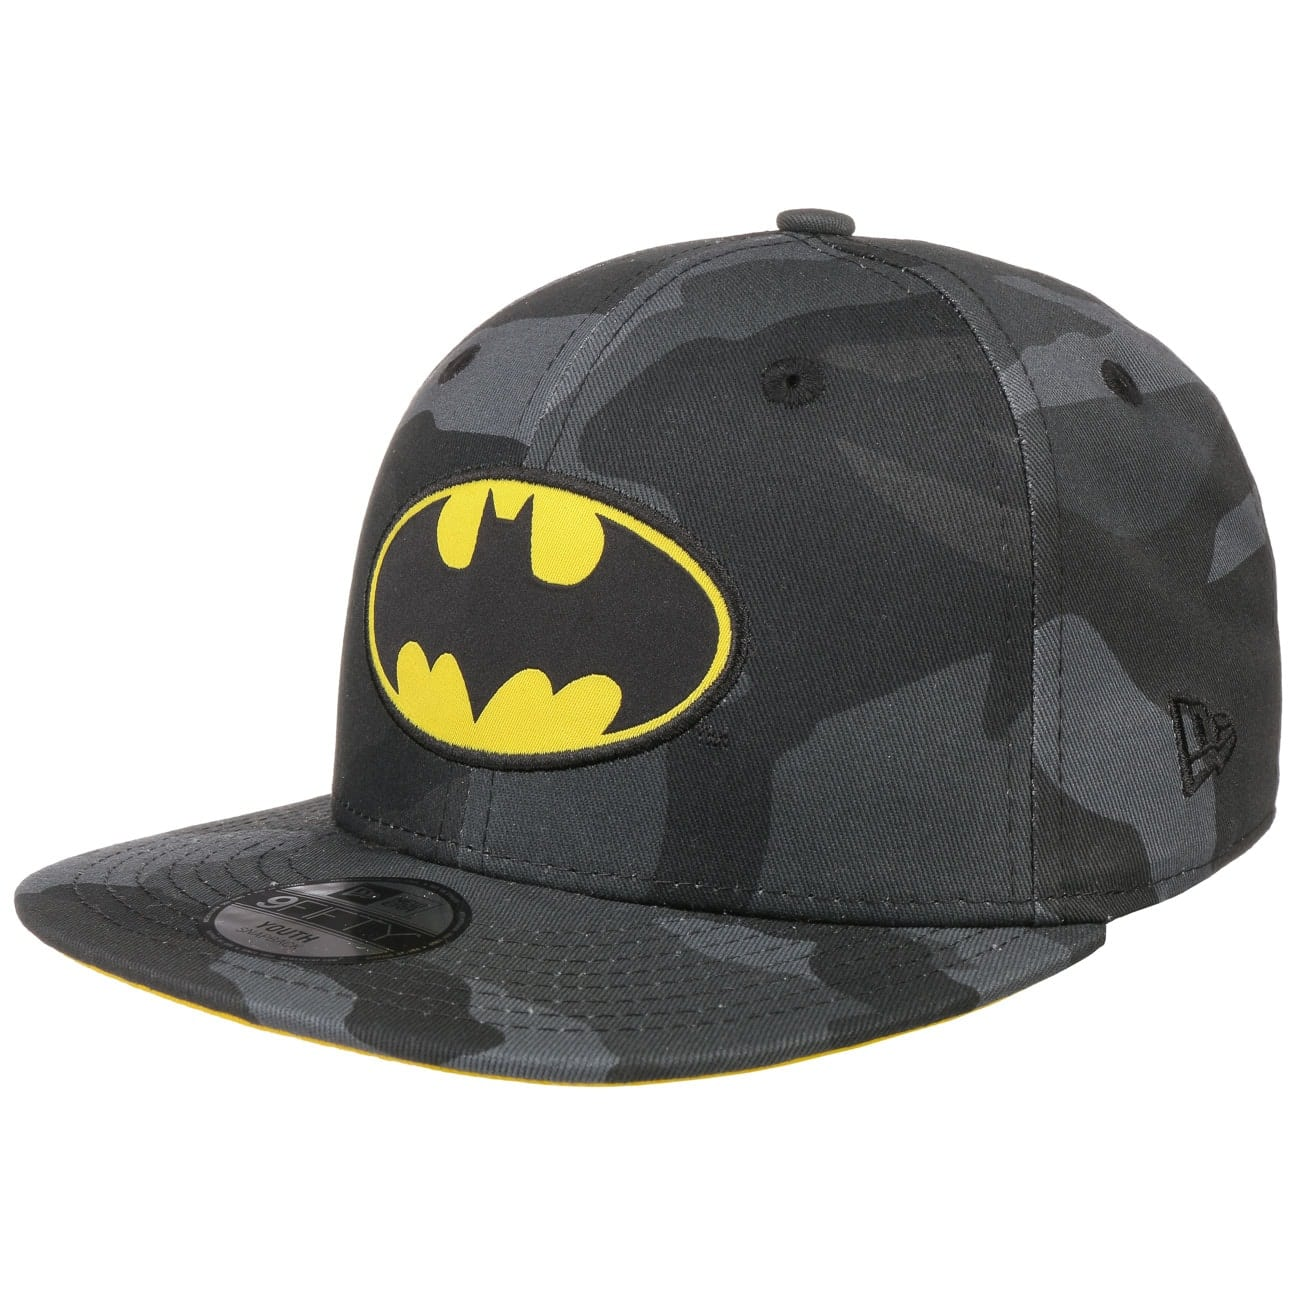 9Fifty KIDS Character Batman by New Era